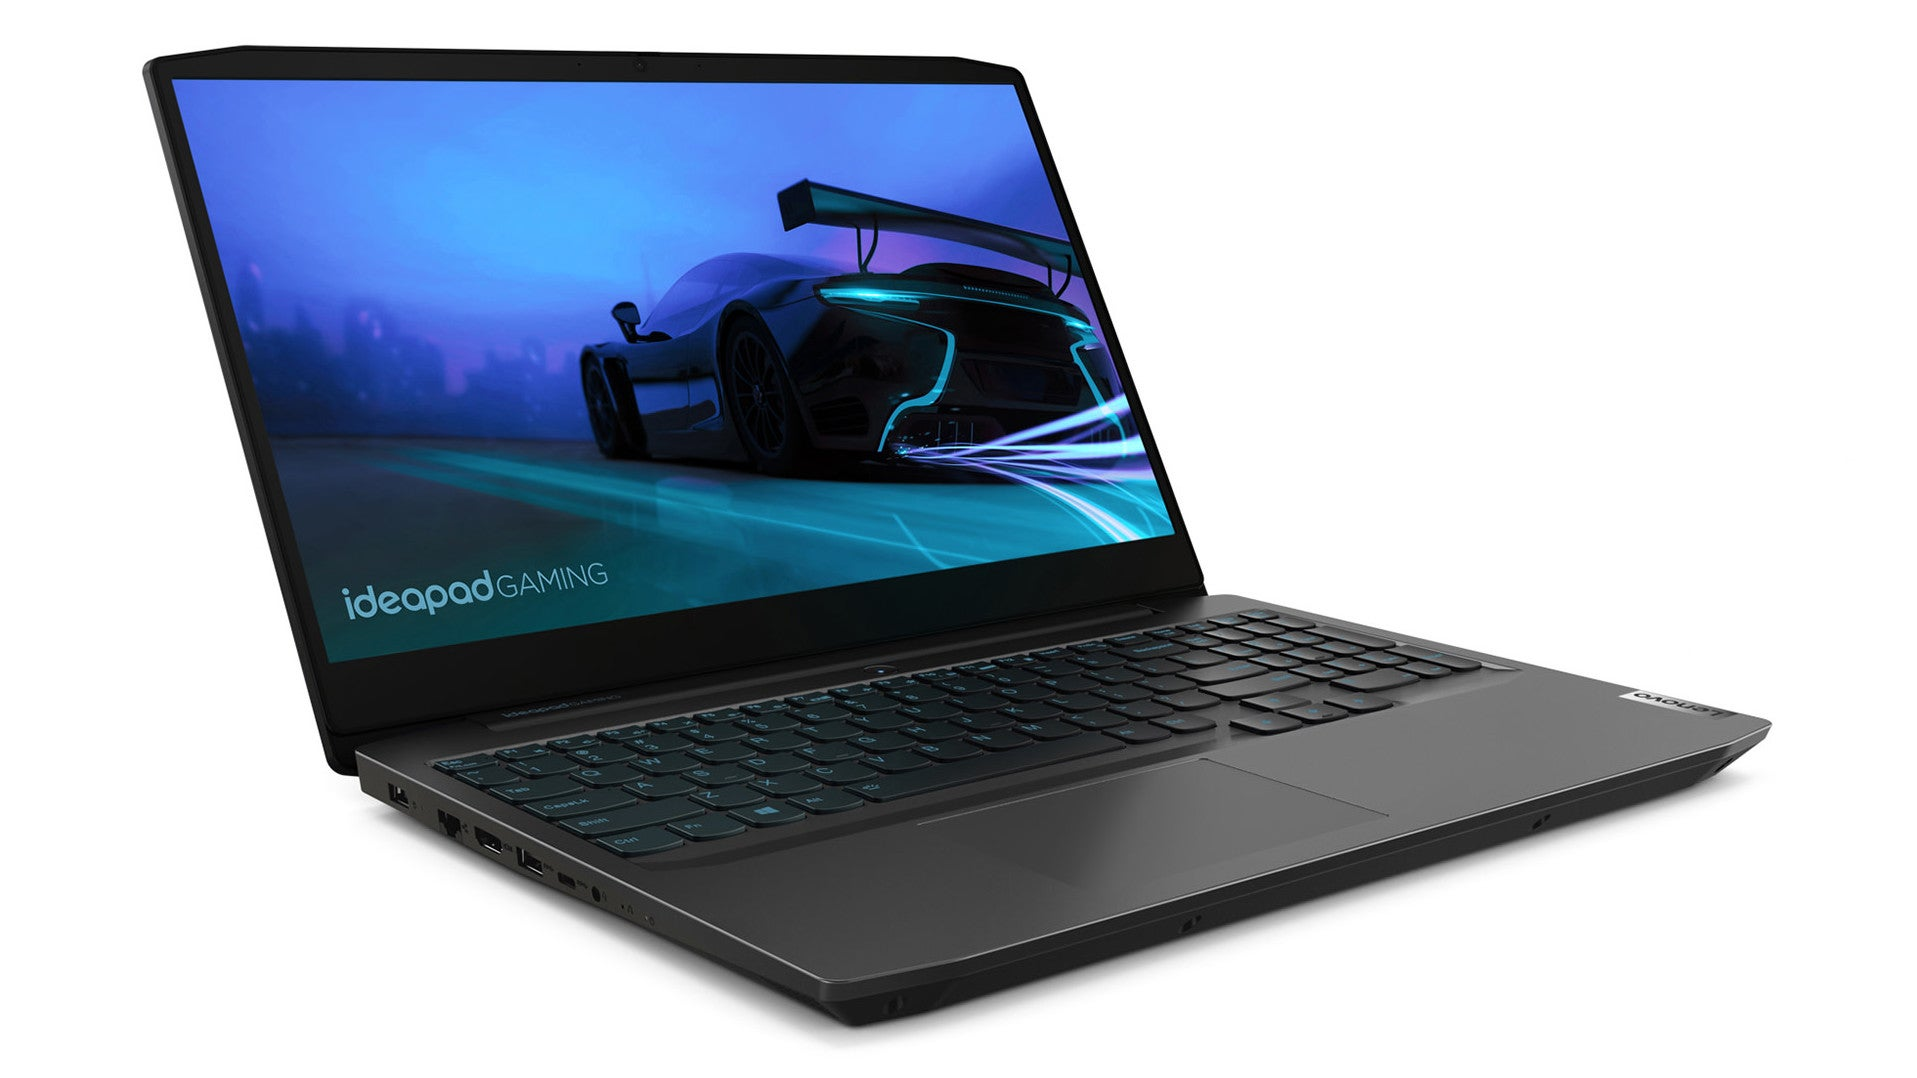 Lenovo Makes Big Battery Life Claims For Its New Budget Gaming Laptops